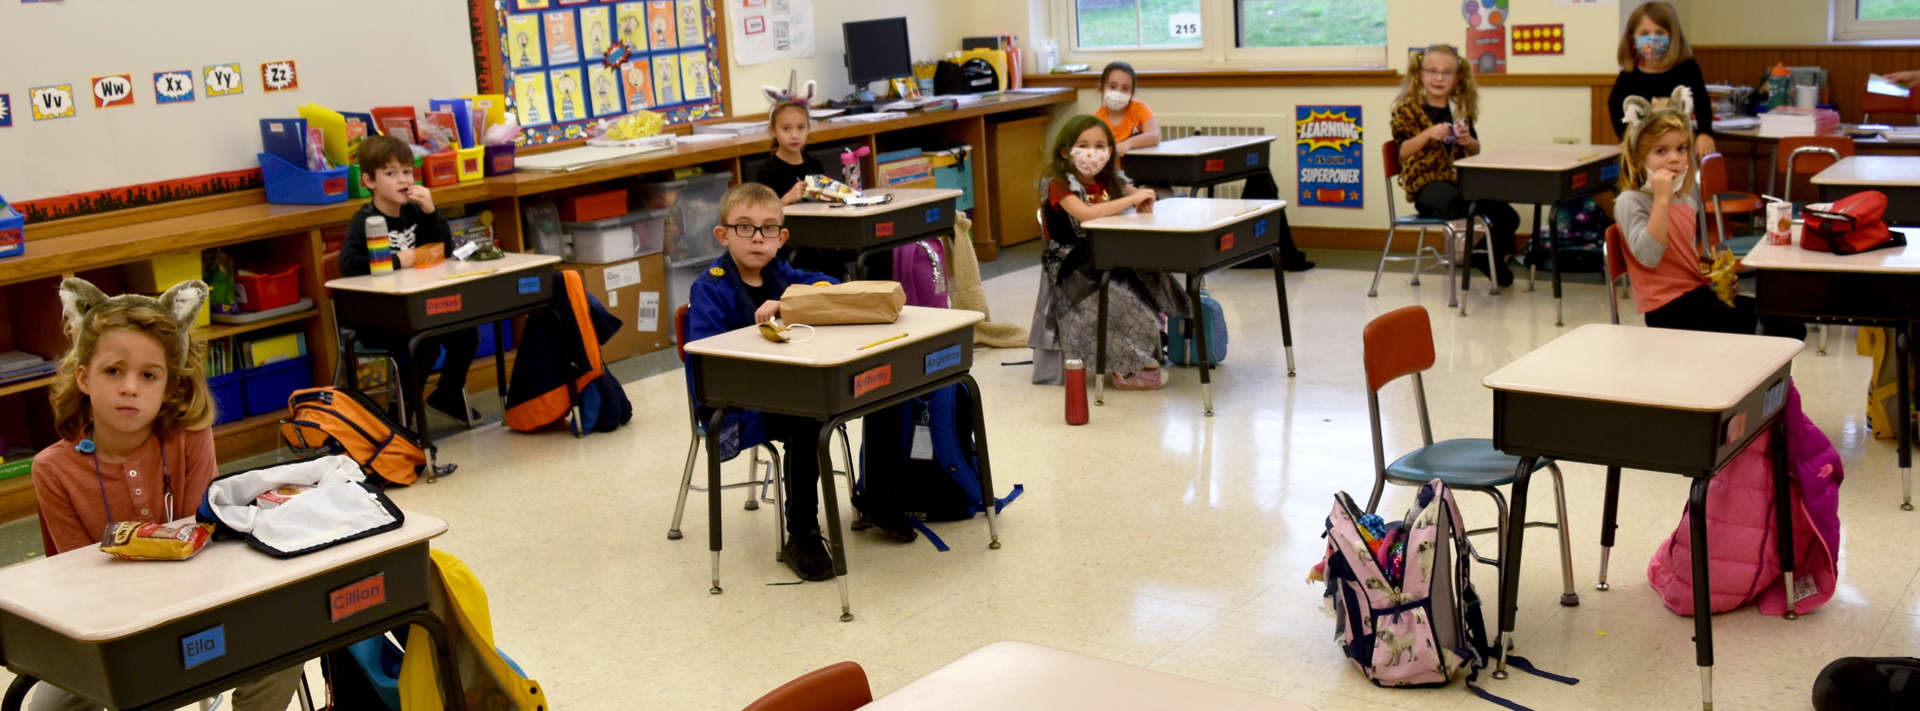 Students sit at their desks eating a snack